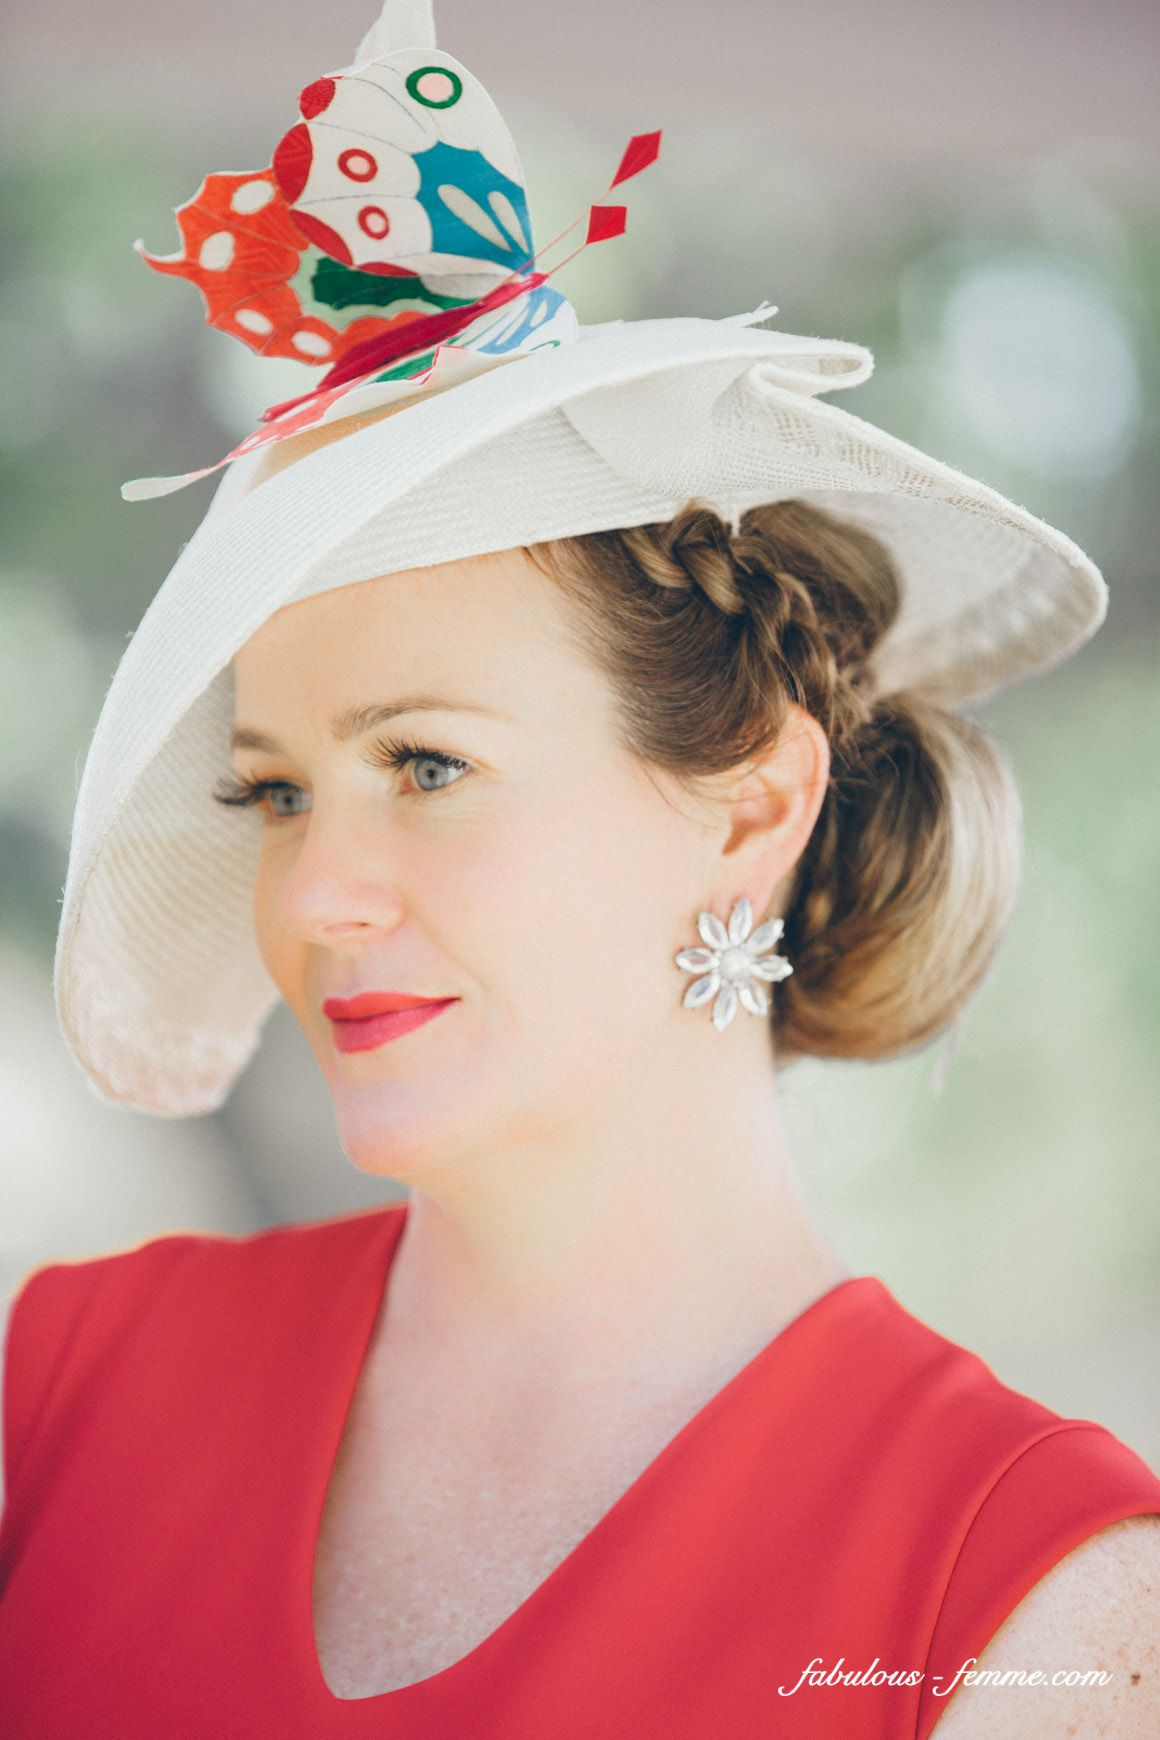 spring racing - best event photography melbourne